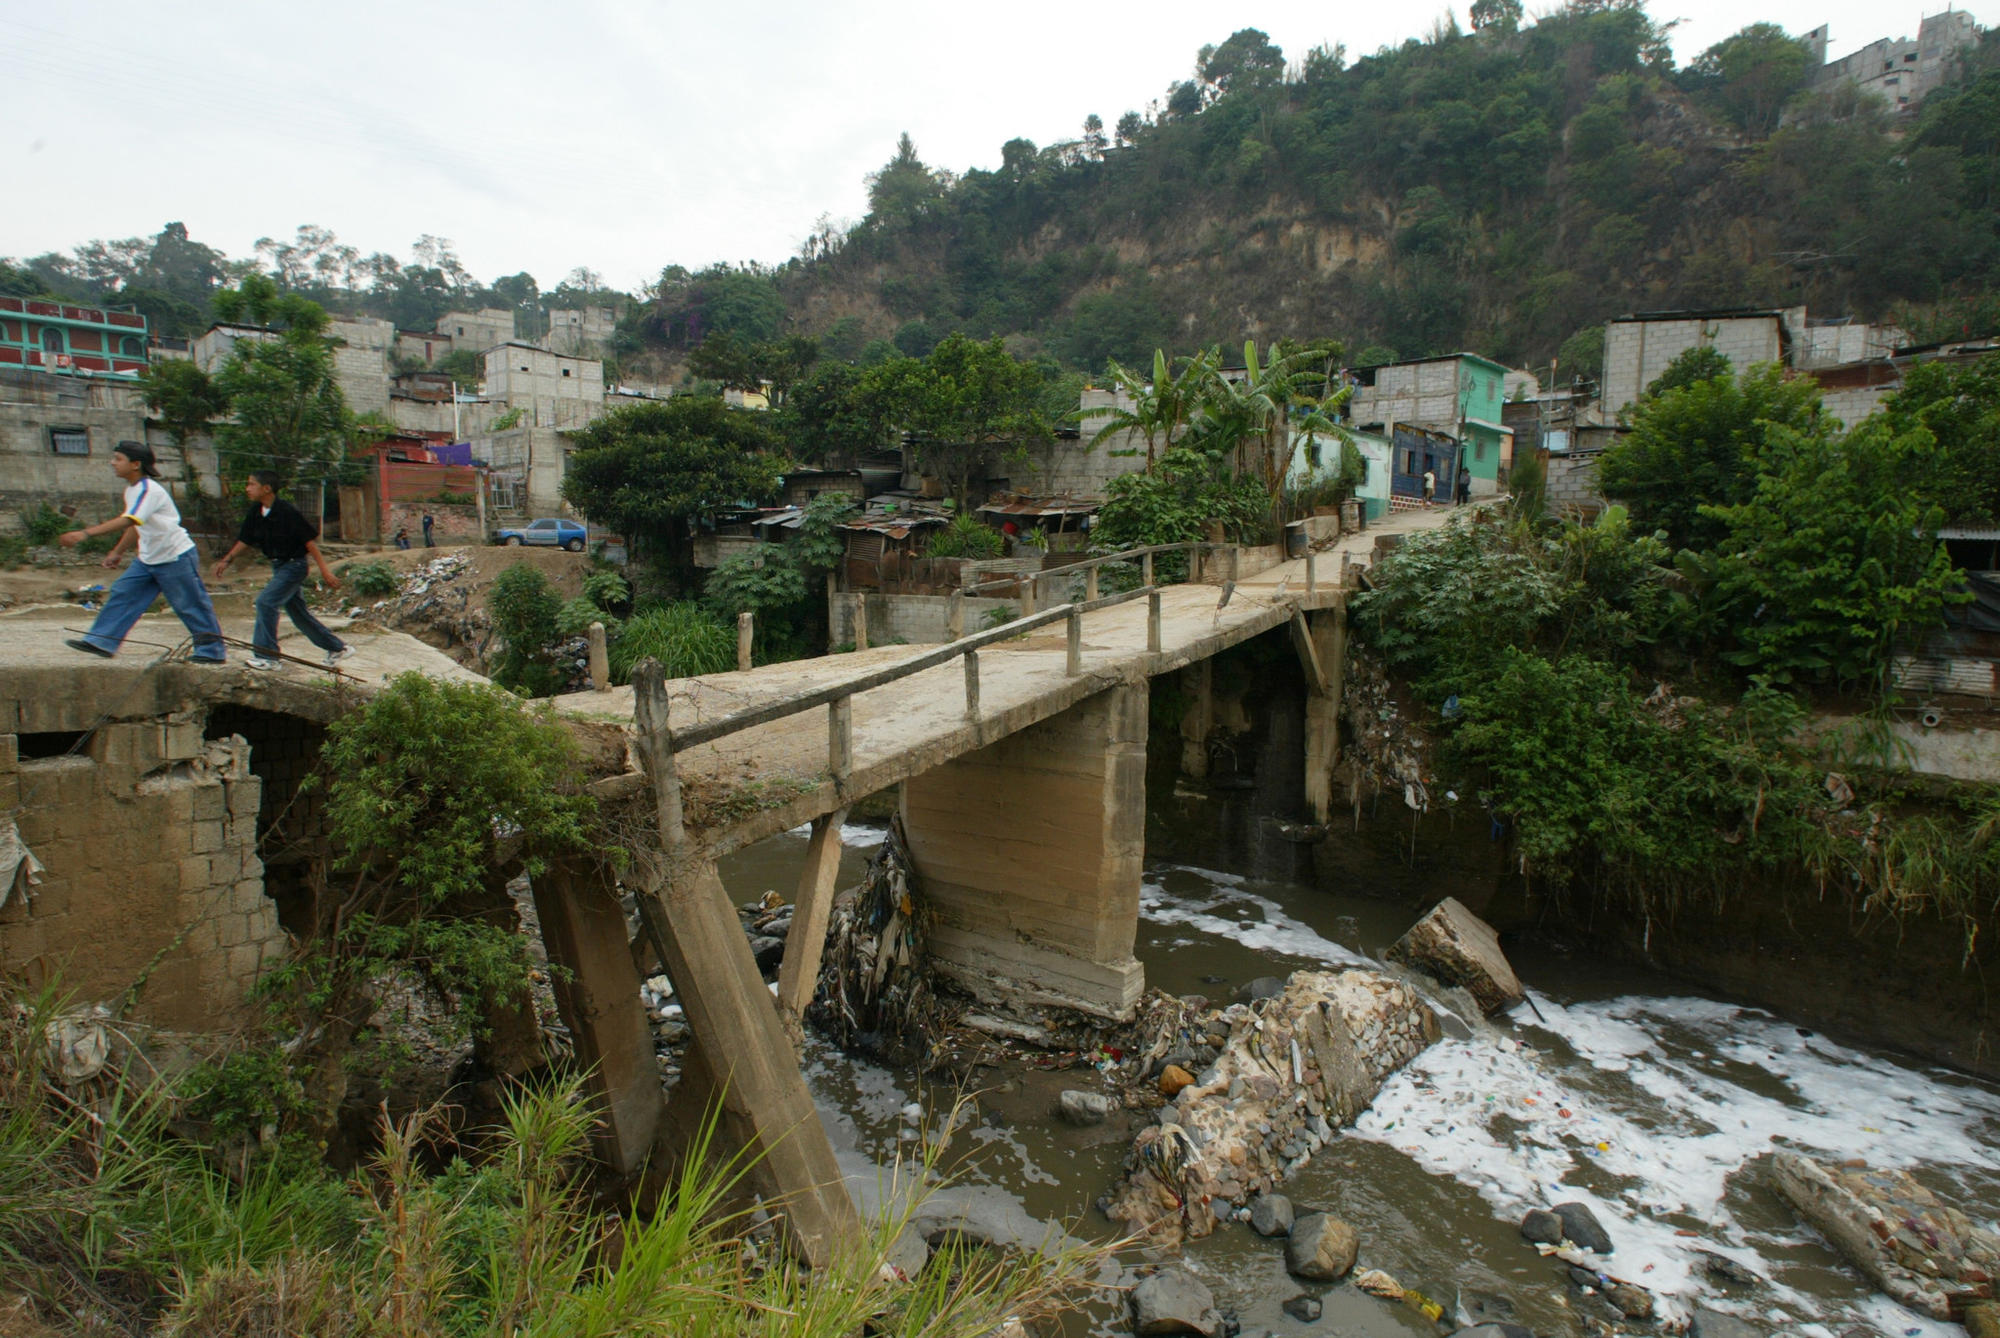 Slum dwellers cross a broken bridge spanning the muddy Rio Las Vacas in Guatemala City where Jose Antonio Guiterrez once lived with his alcoholic father, tubercular mother and two sisters.